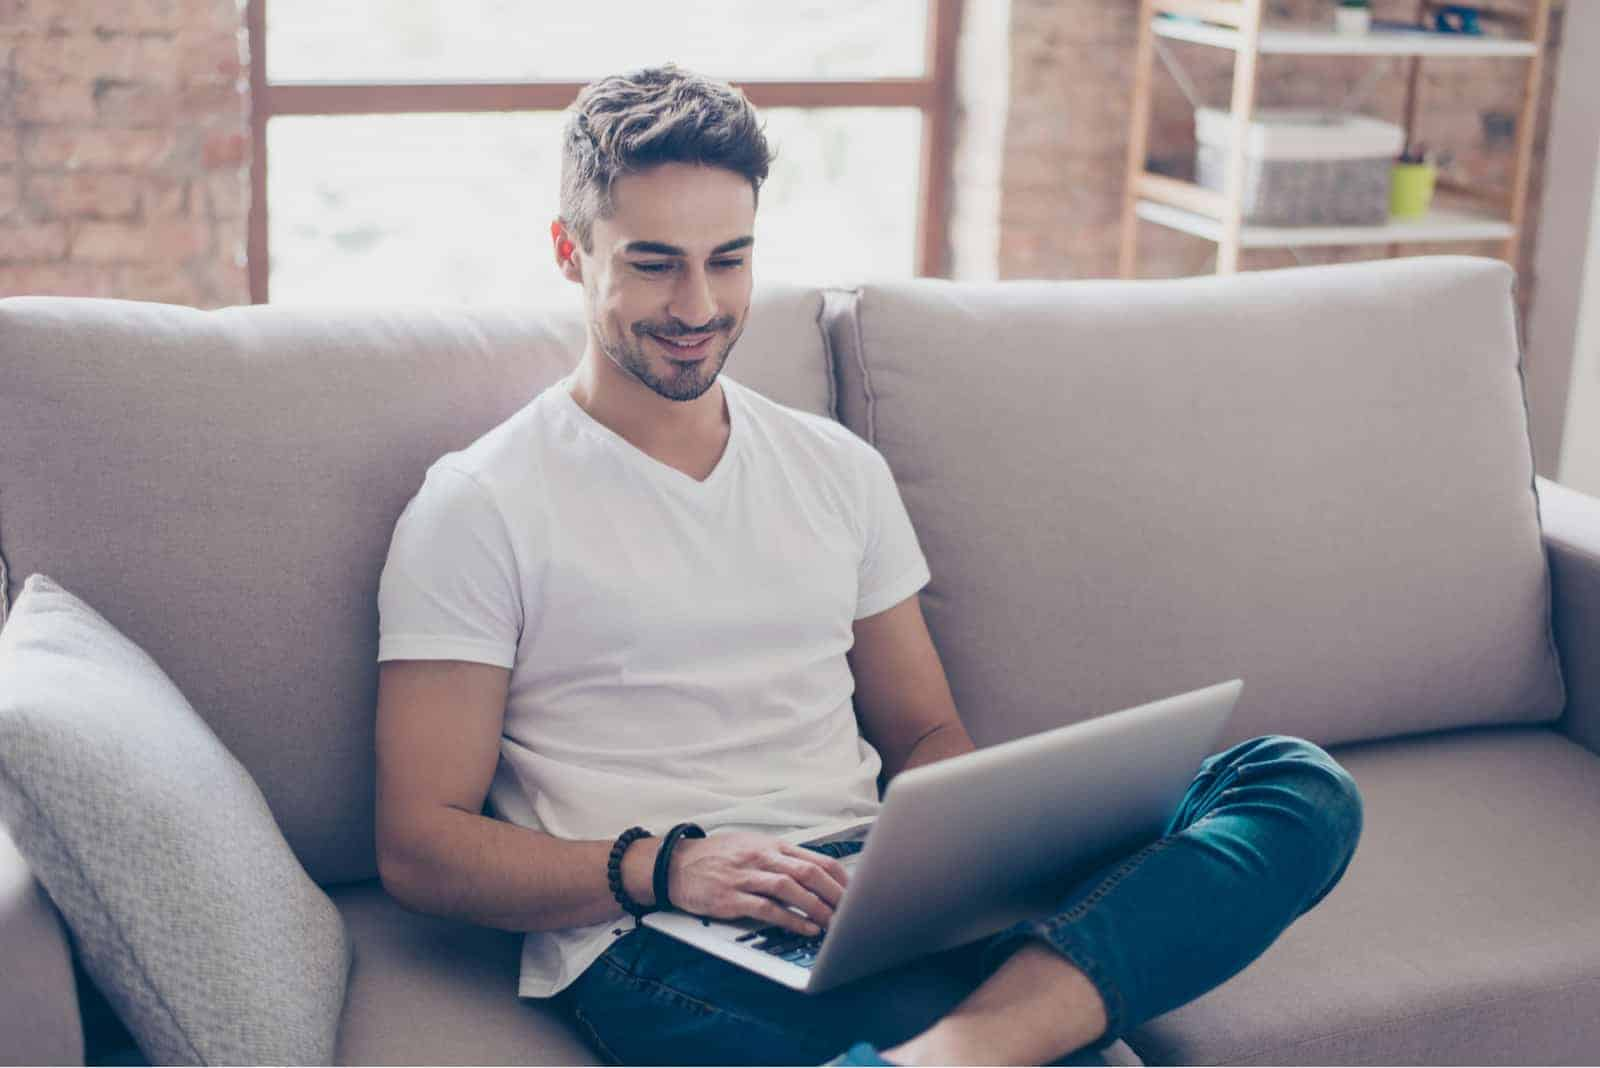 a smiling man sitting on the couch and typing on a laptop